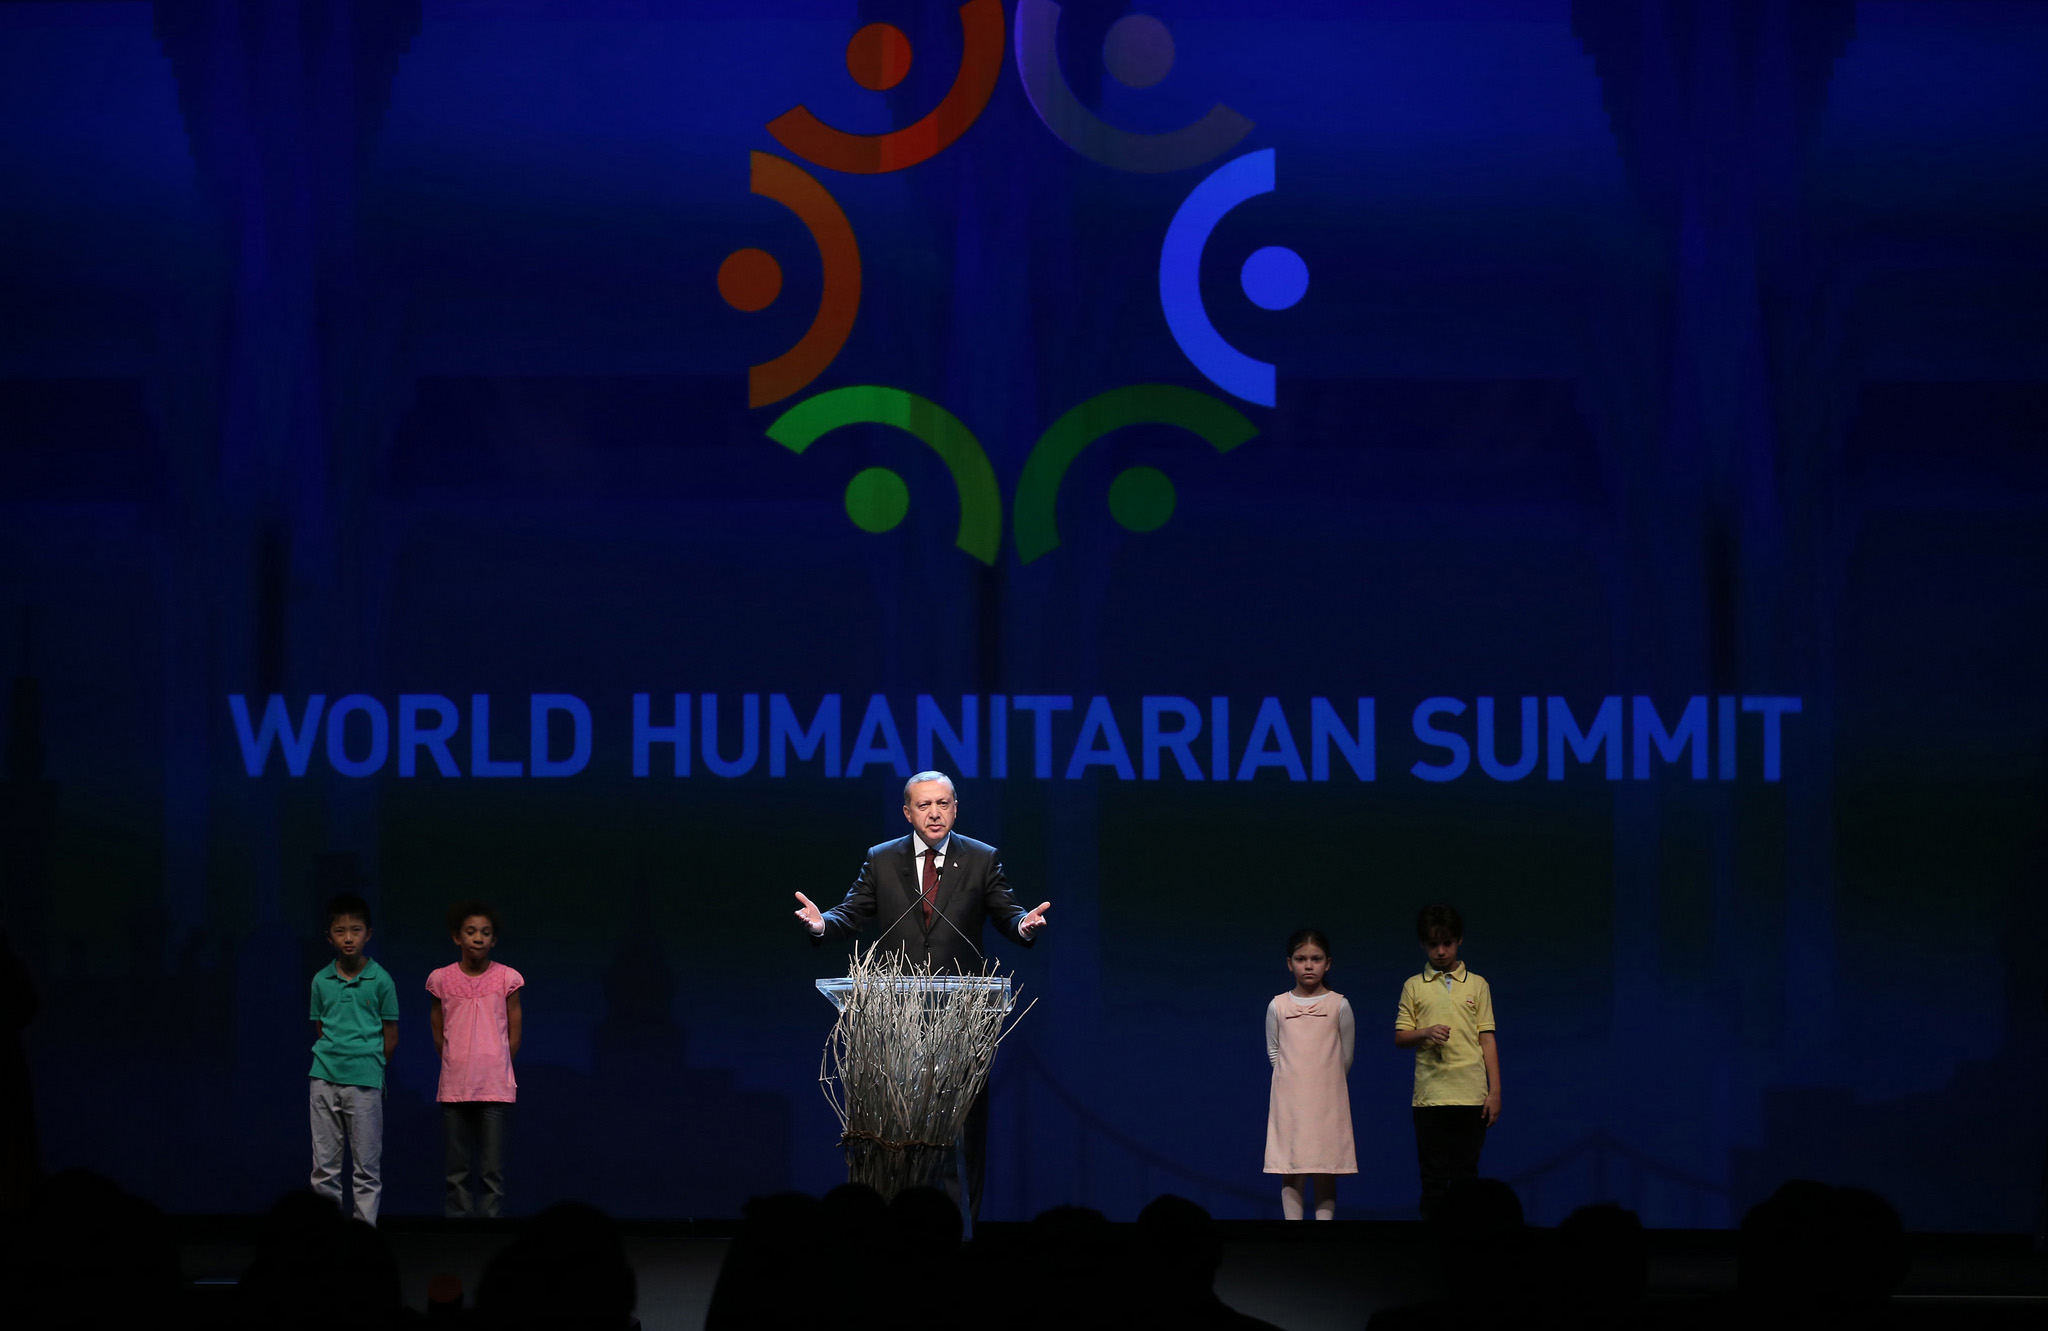 World Humanitarian Summit opening ceremony